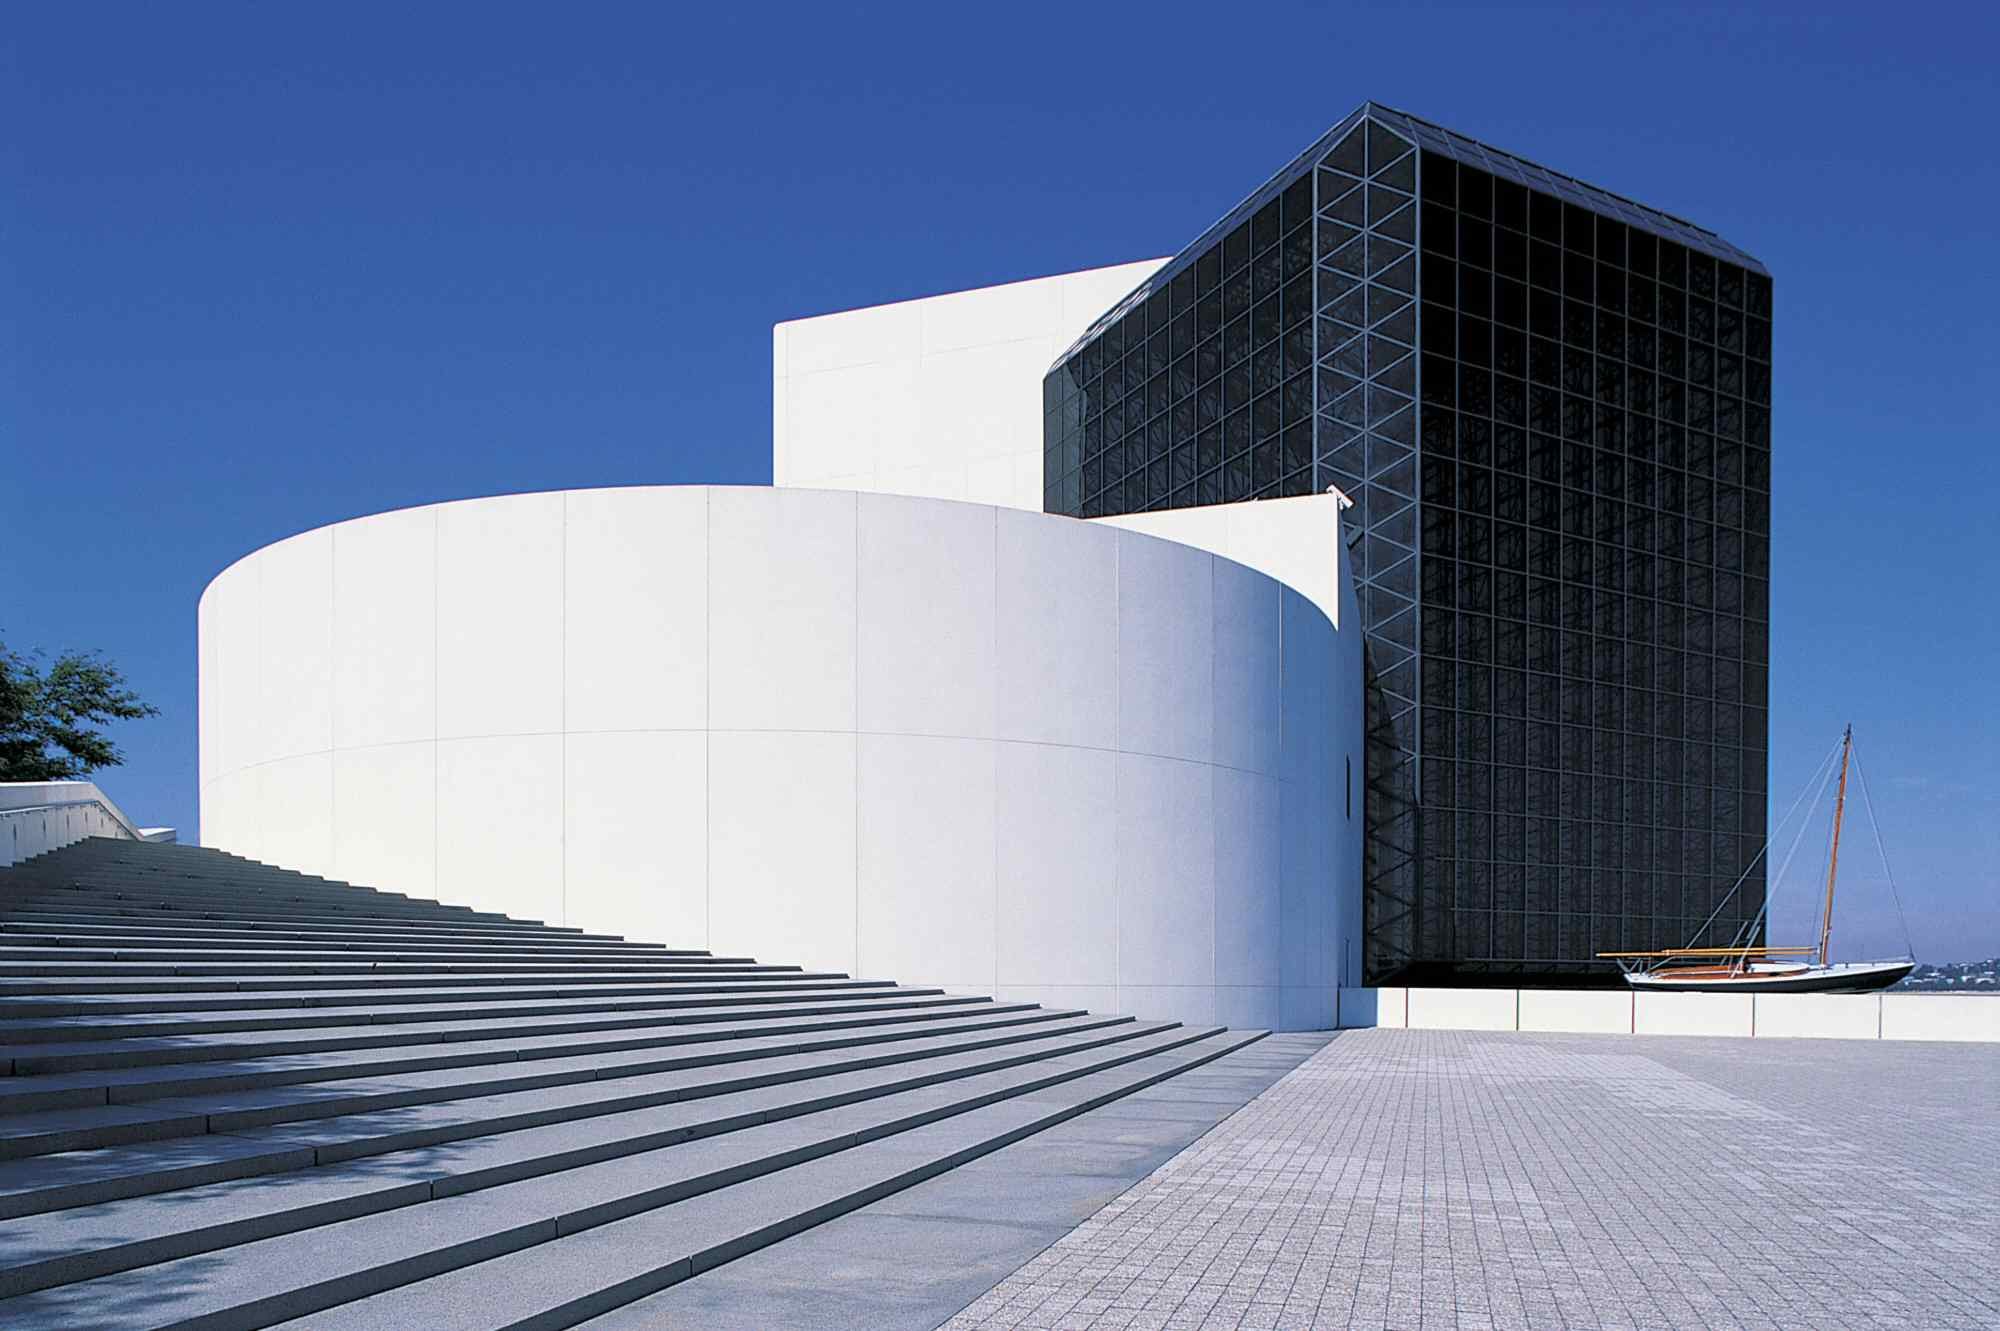 modern building, white circular near steps and glass tower in rear, sailboat on plaza